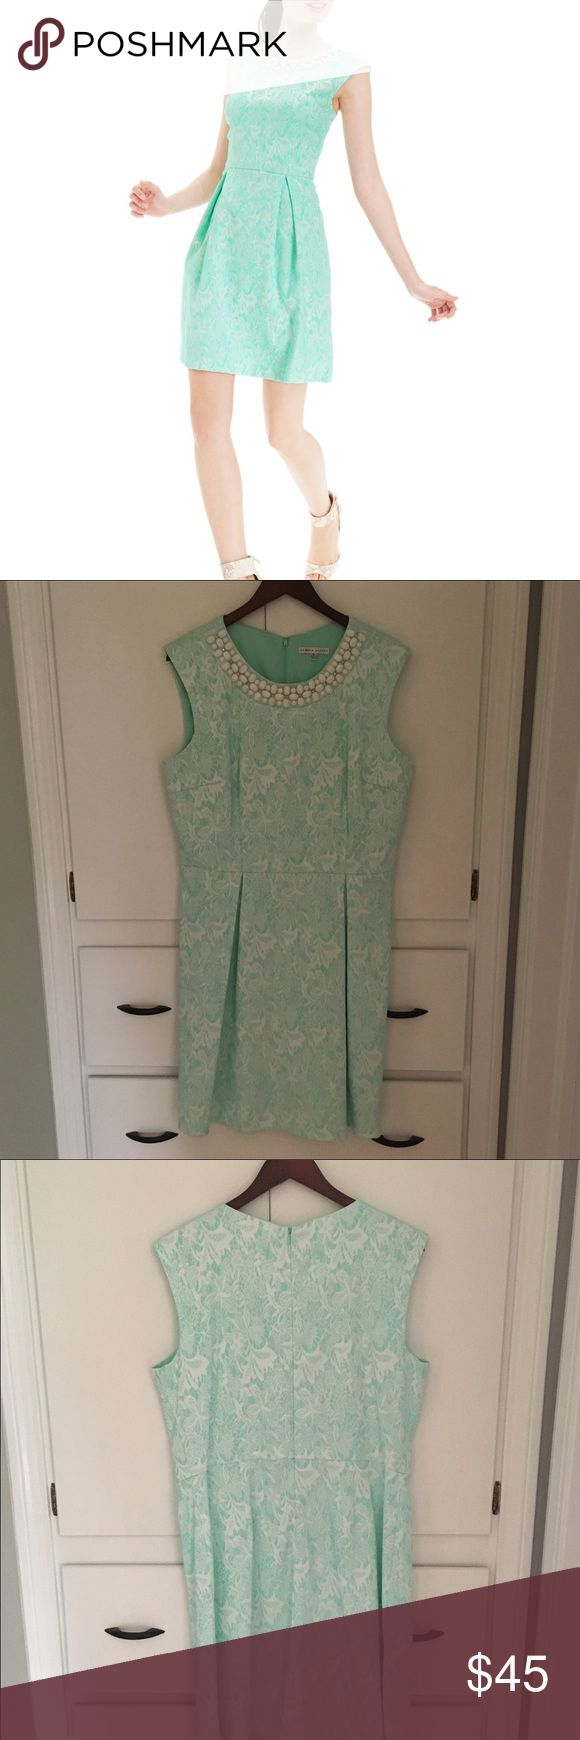 Sandra Darren Mint Floral Jacquard Dress Size 16 Sandra Darren Women's Mint Floral Jacquard Embellished Dress Size 16 (True to Size!) Beautiful Fit & Flare. Originally purchased from Macy's last year for $90, asking $45 OBO! 💋👗 Dresses Midi